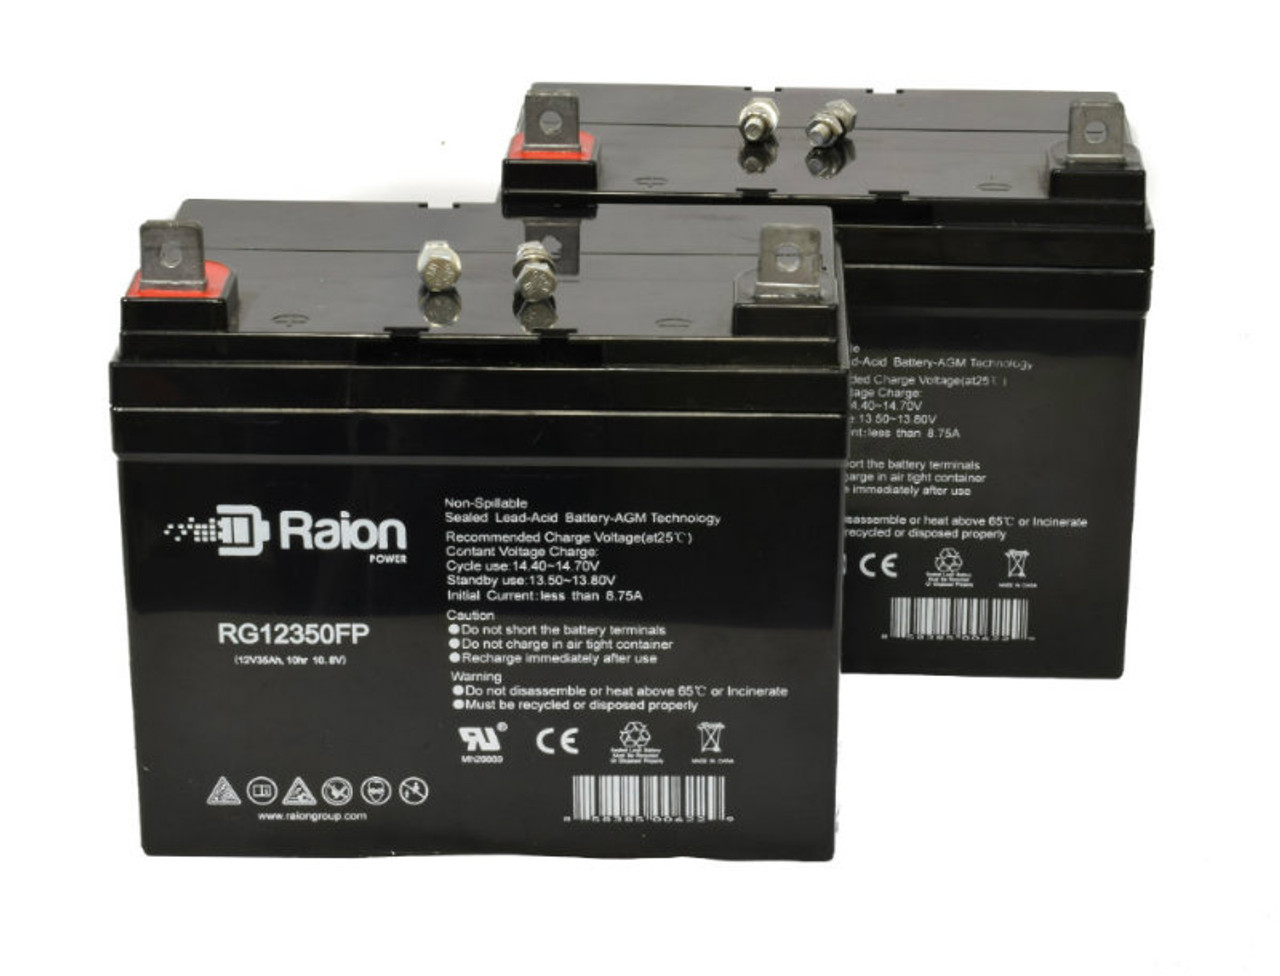 Raion Power RG12350FP Replacement Wheelchair Battery For Invacare Booster (2 Pack)